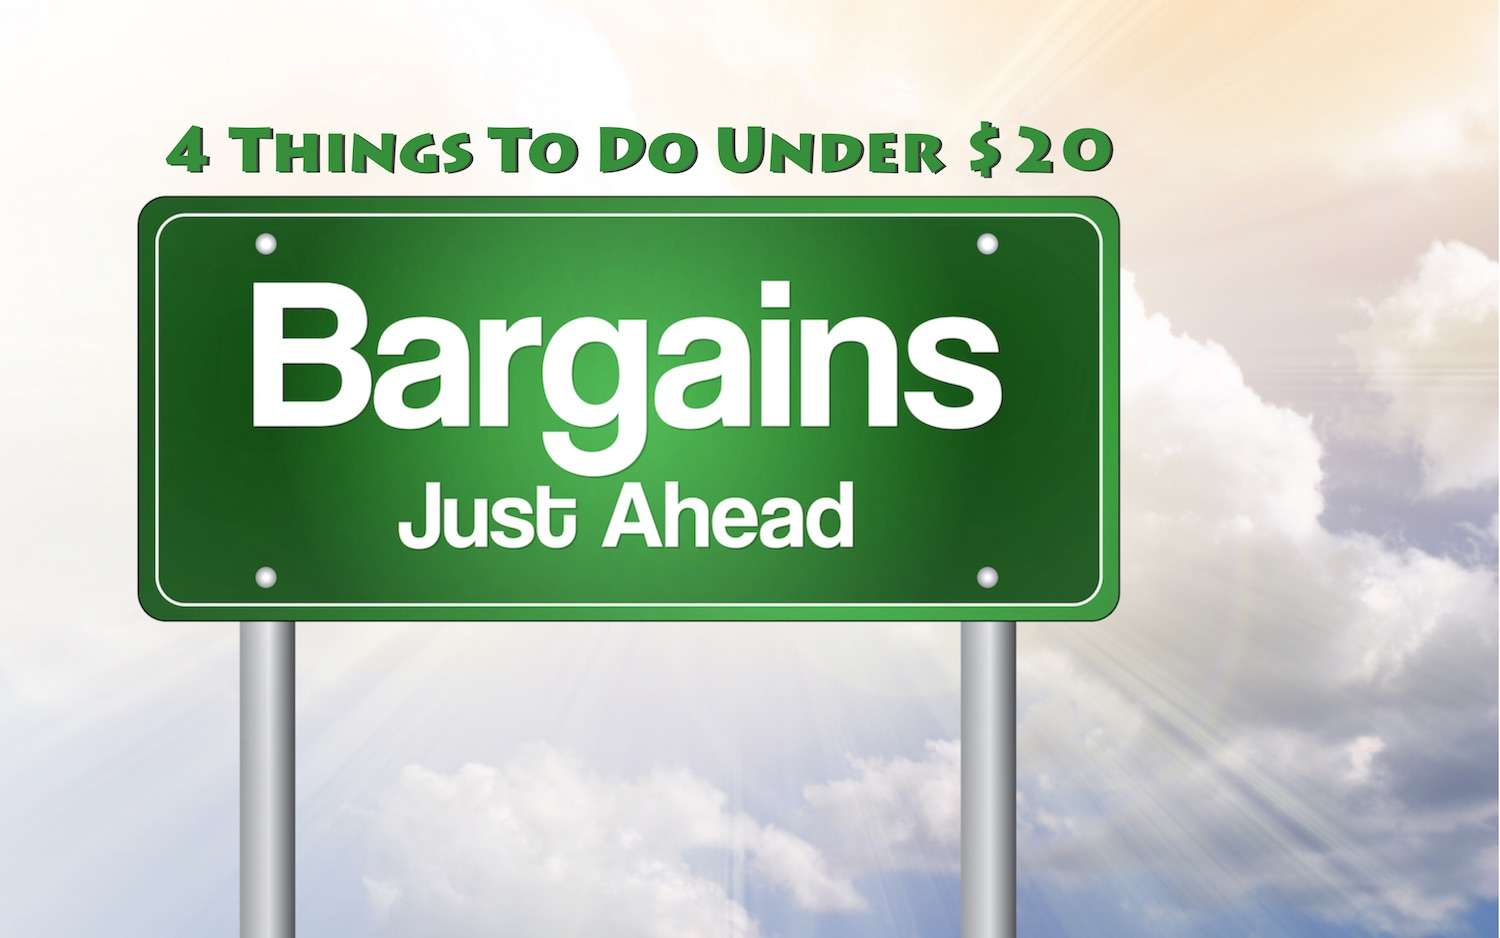 Orlando Bargains - 4 Things To Do Under $20